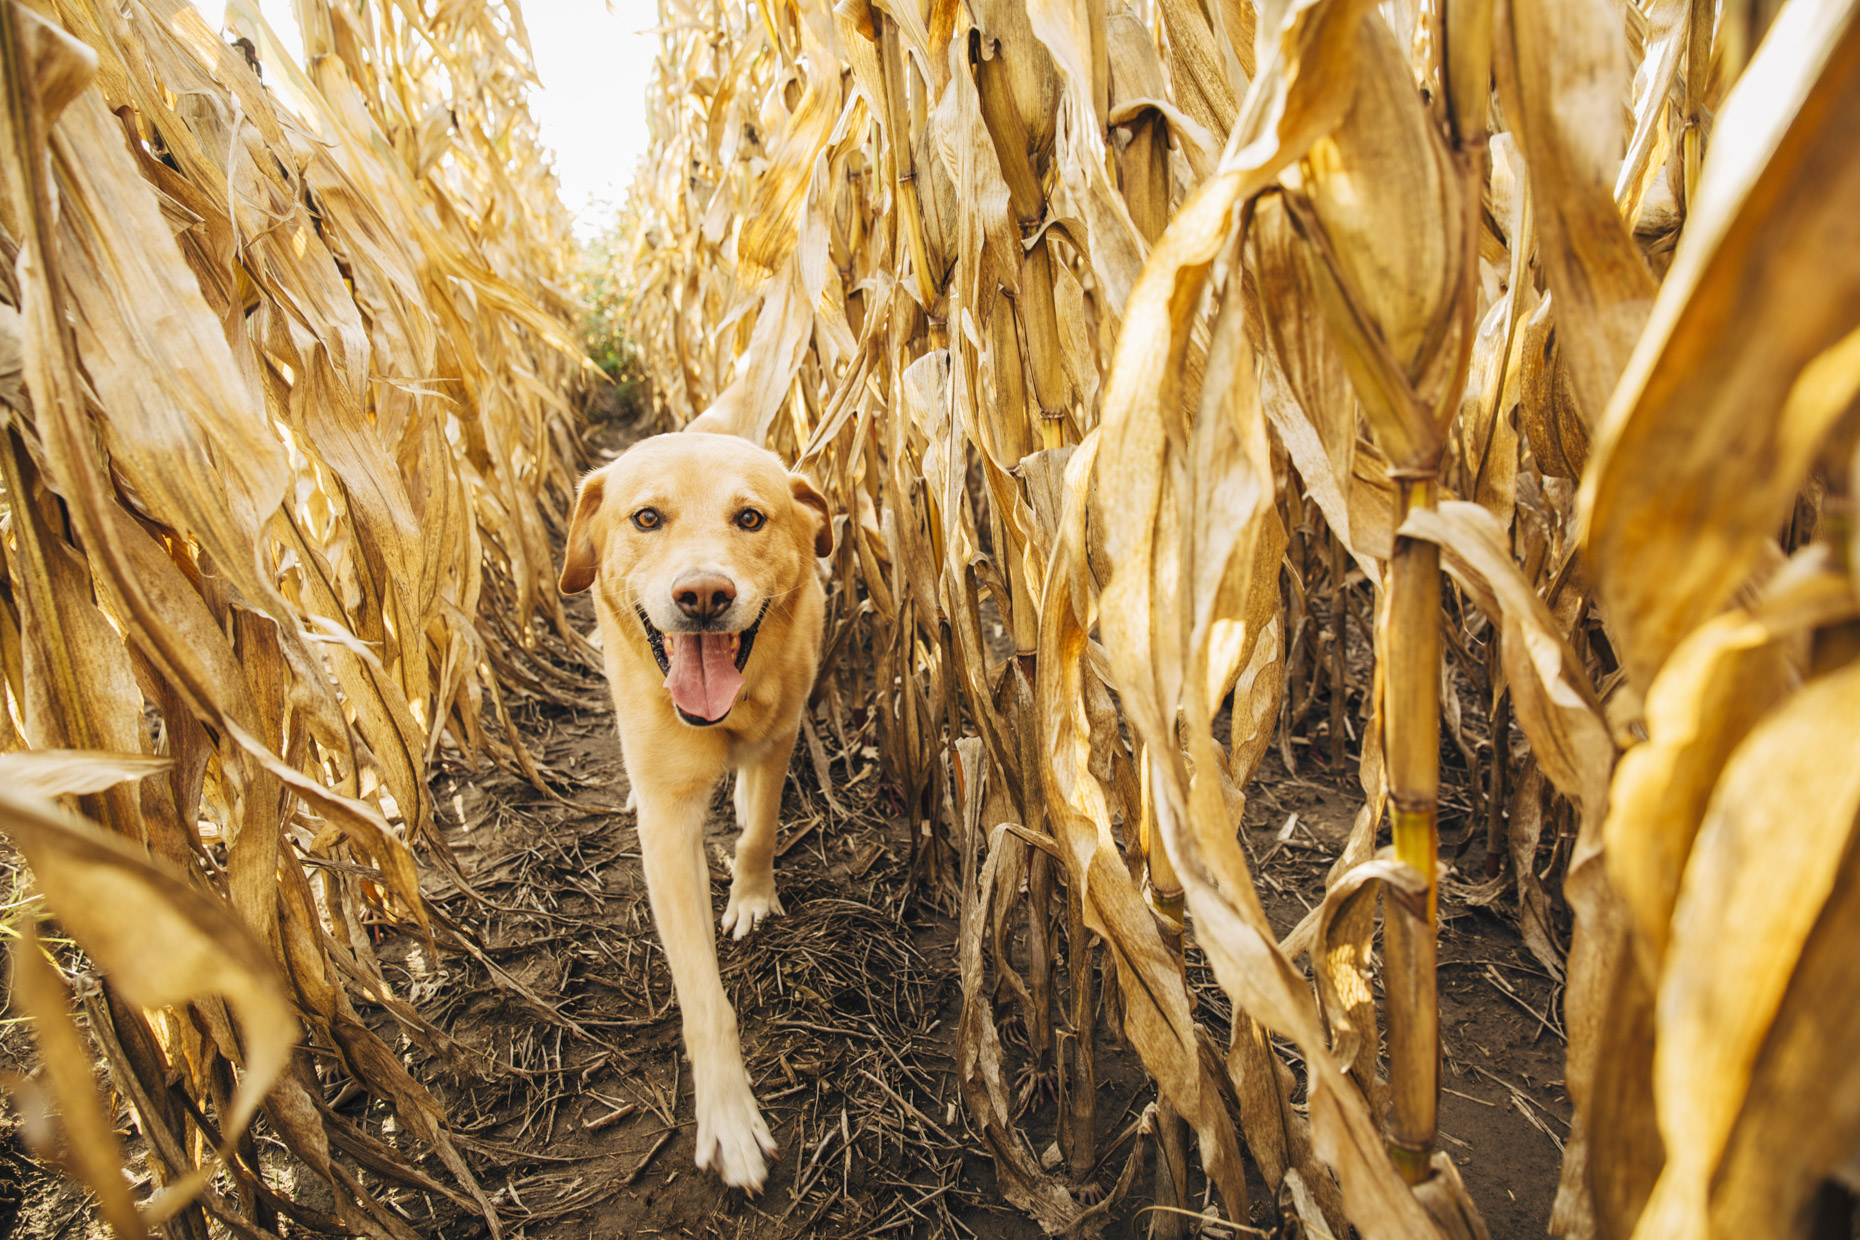 Yellow labrador retriever dog walking through cornfield